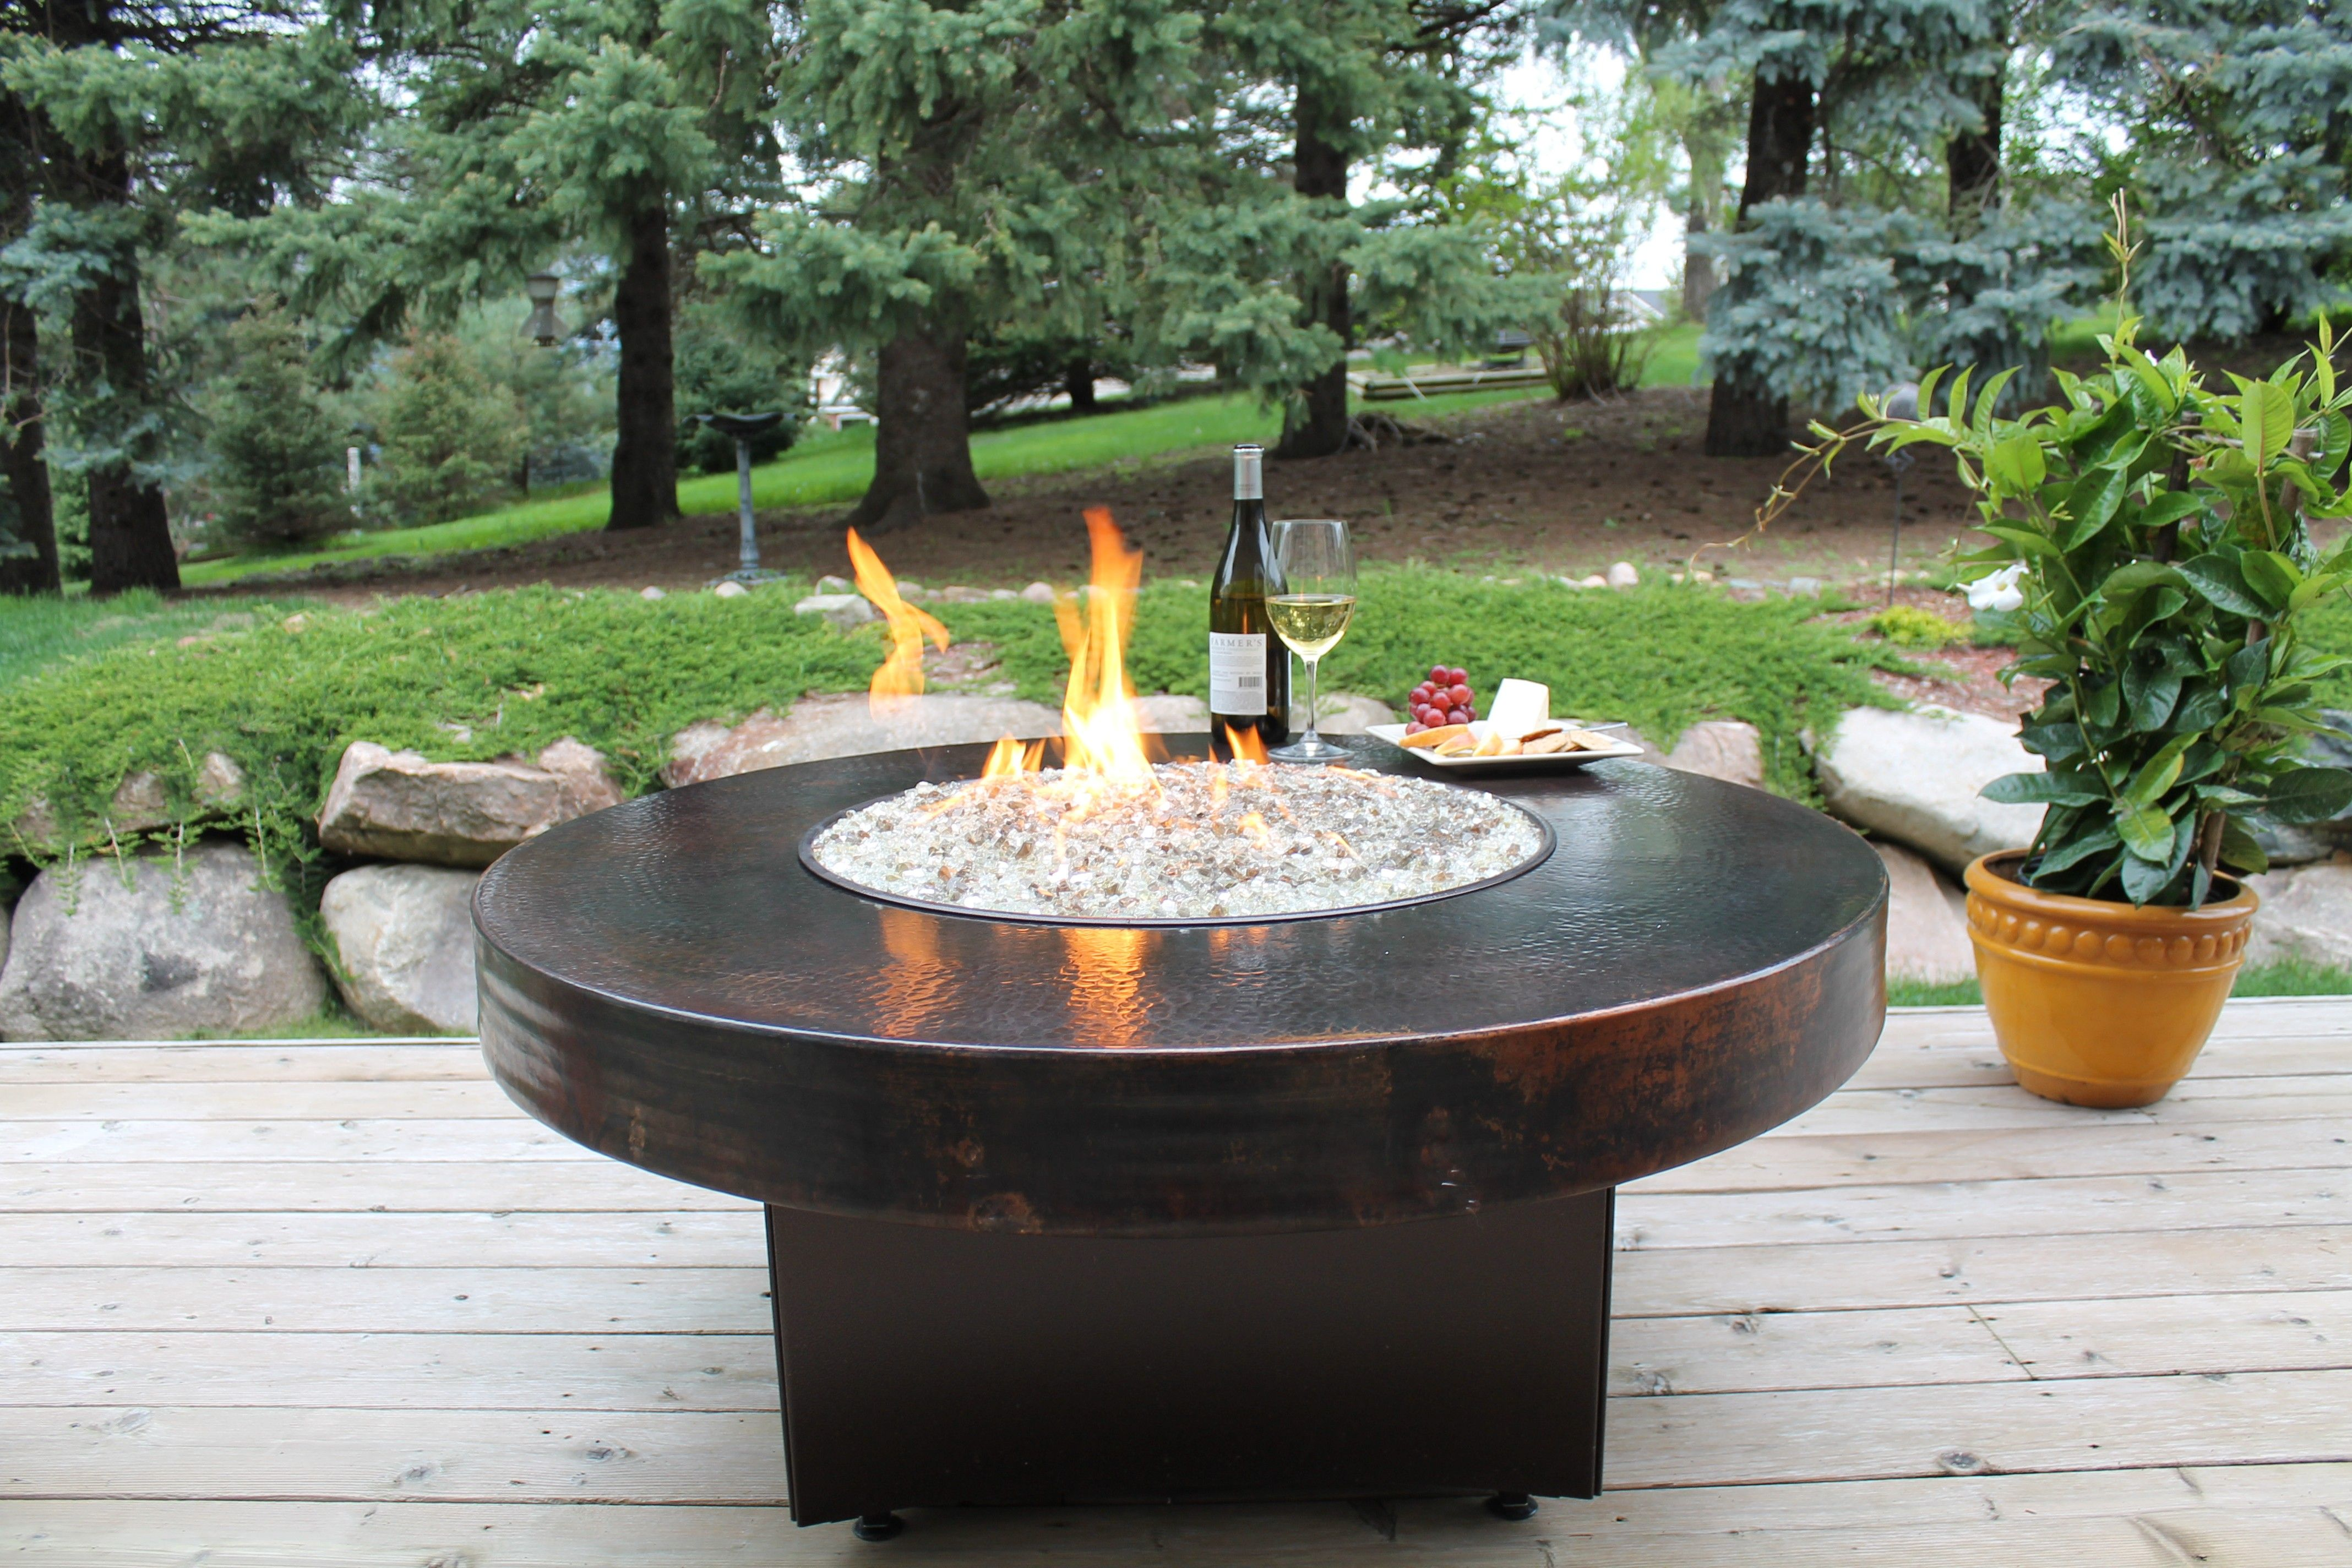 Oriflamme Round Hammered Copper Fire Pit Table Fire Pit Table Gas Firepit Fire Pit